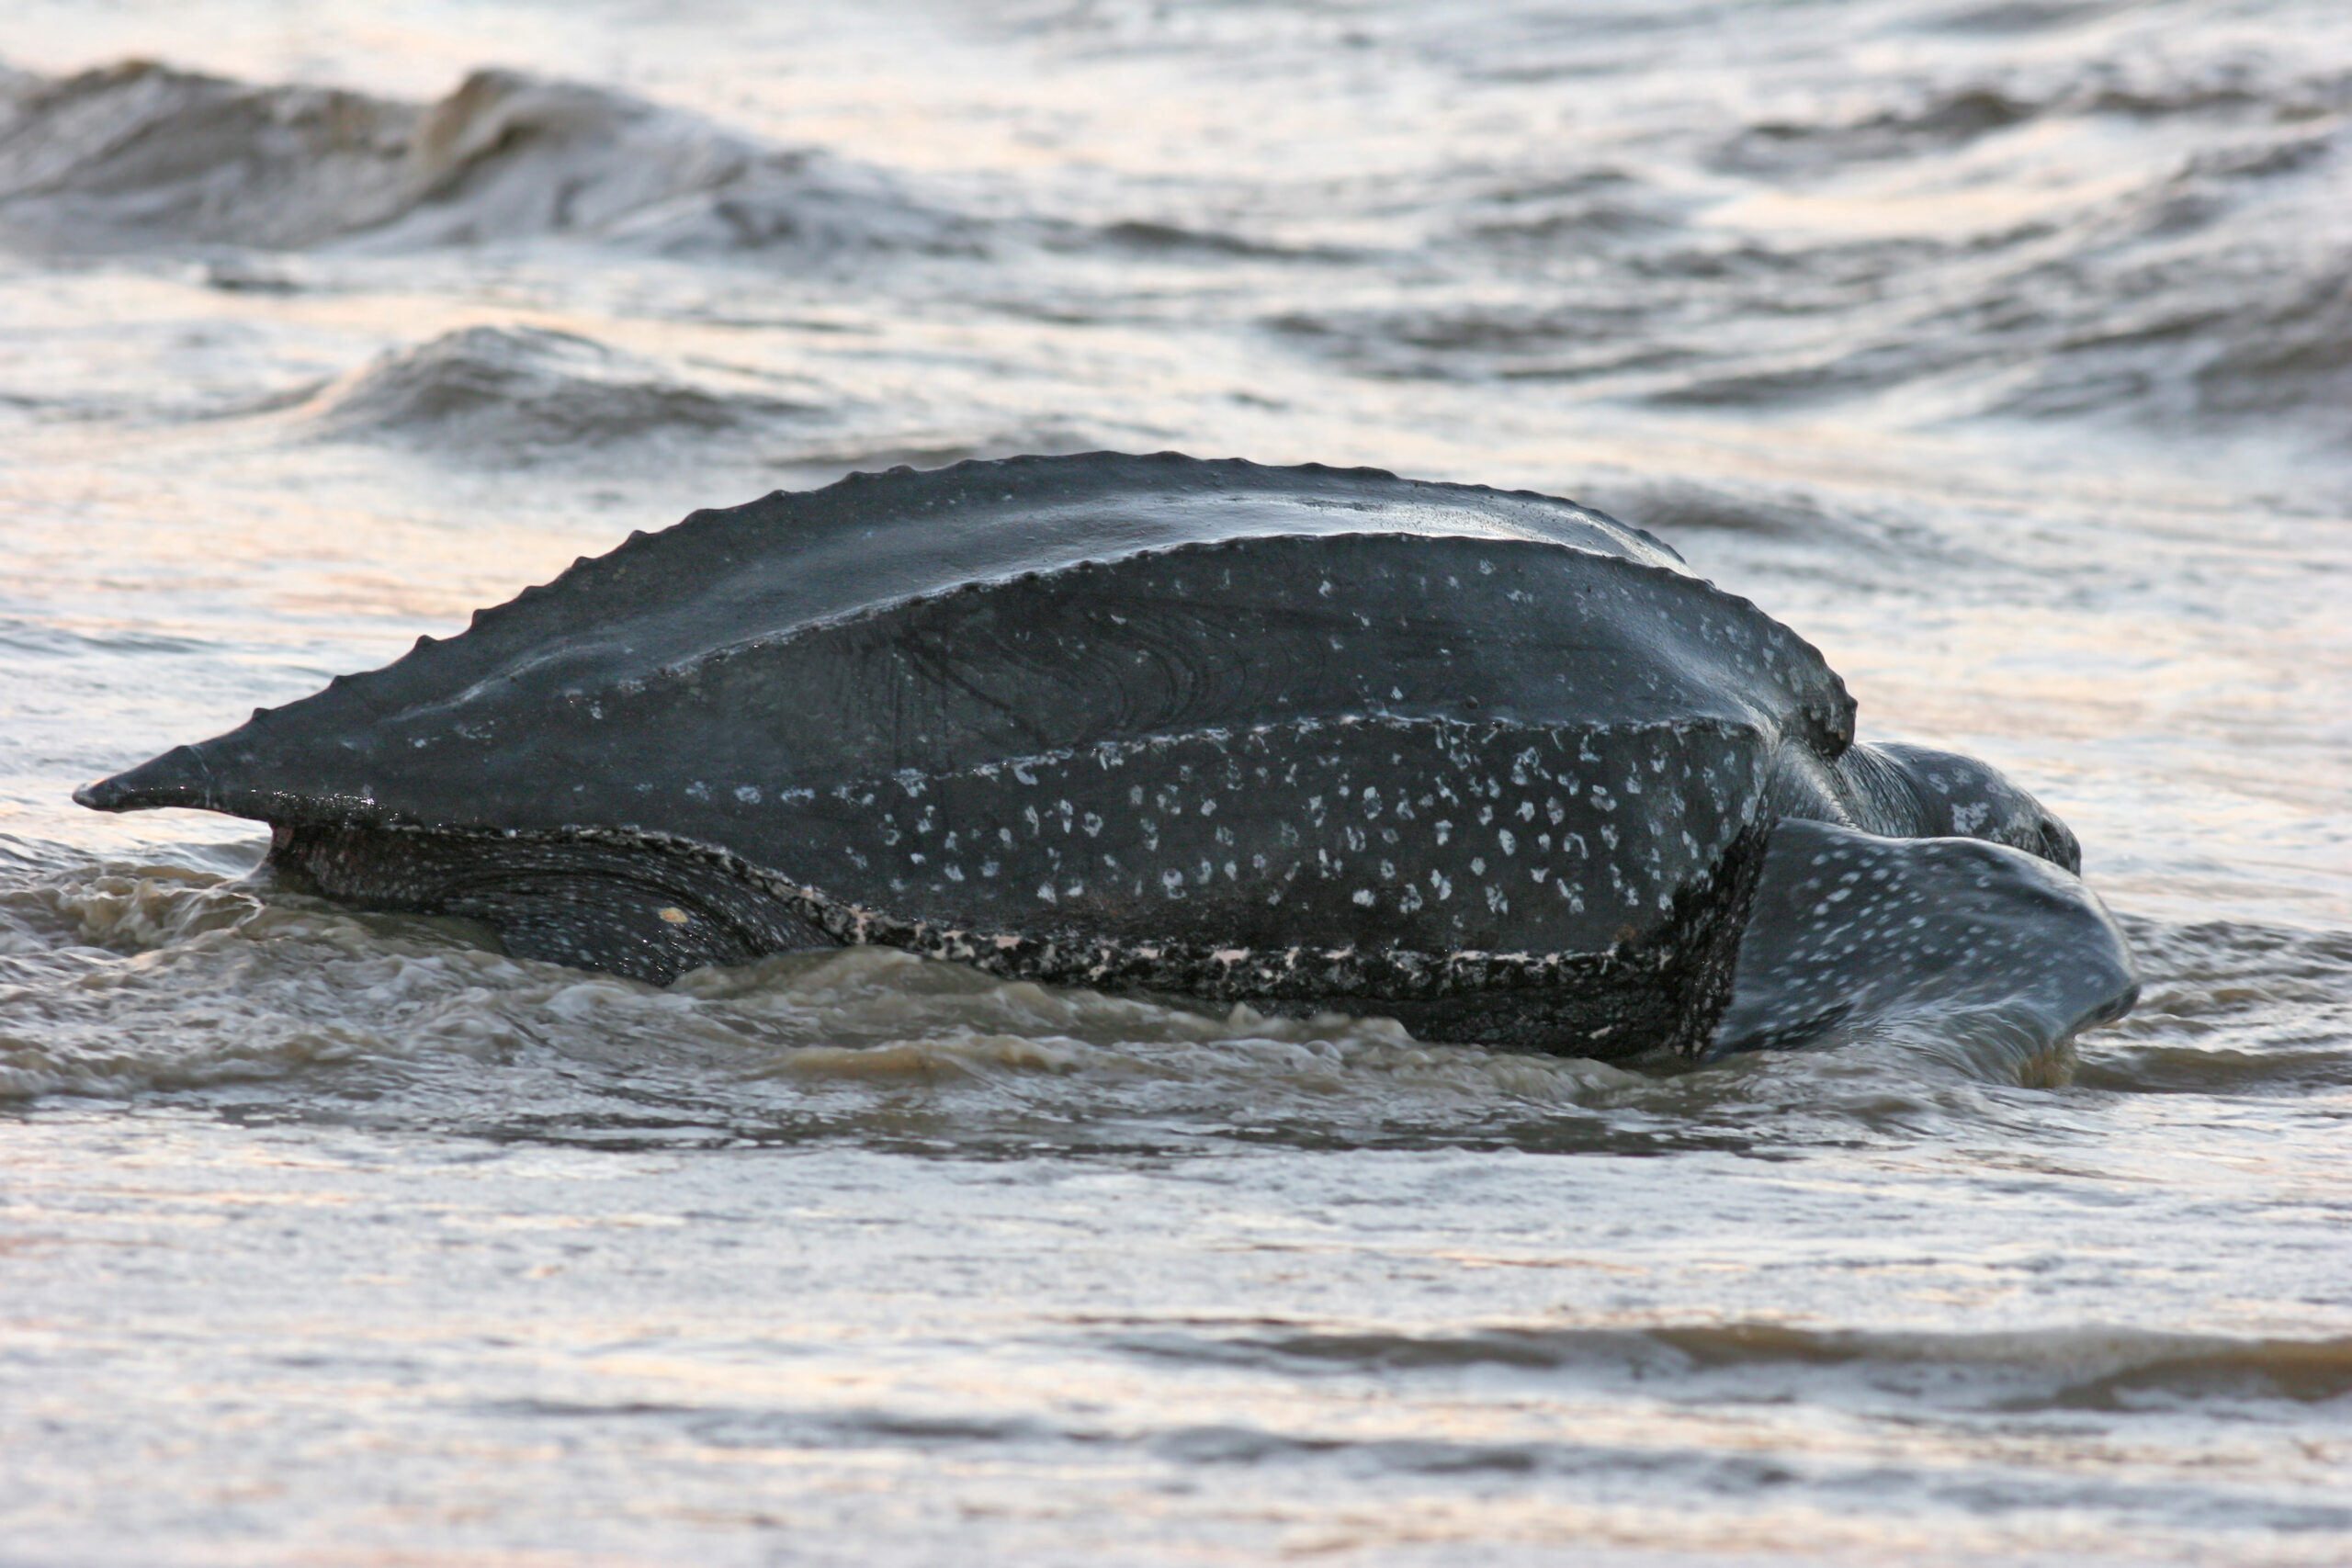 California Agency to Determine if Leatherback Sea Turtles Should be Listed as 'Endangered'